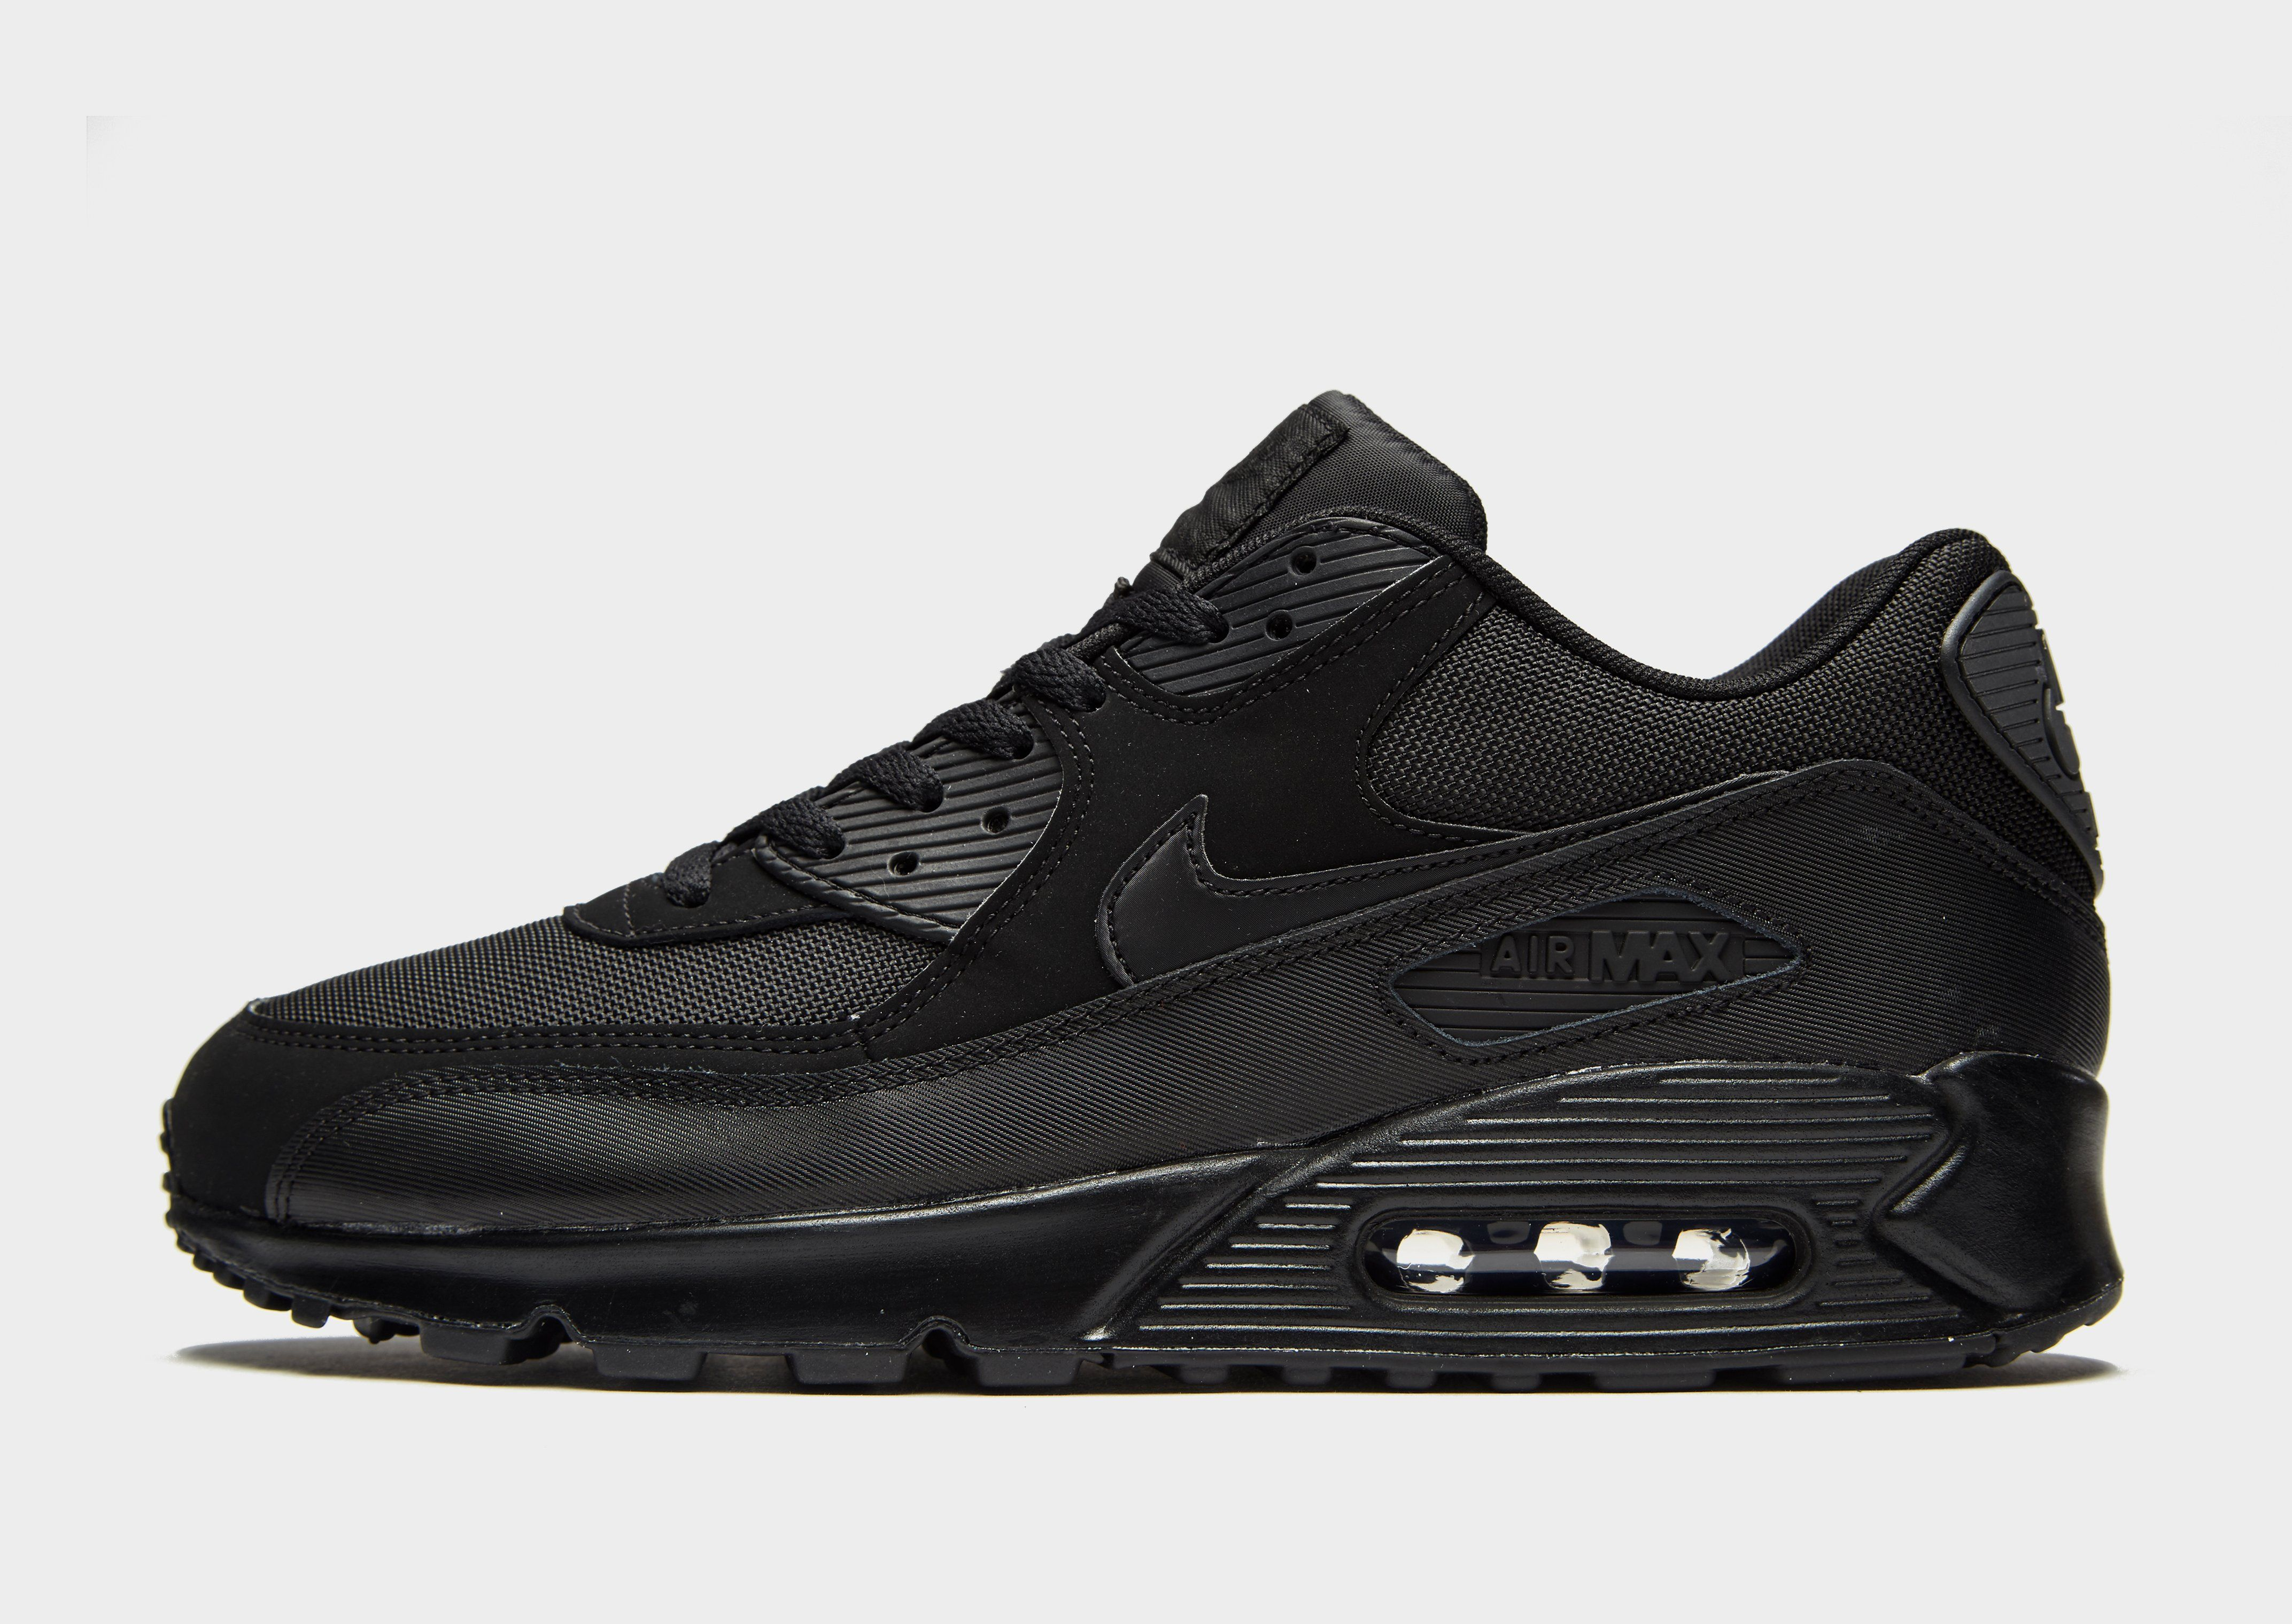 c2a184db2ca24 Nike Air Max 90 ...